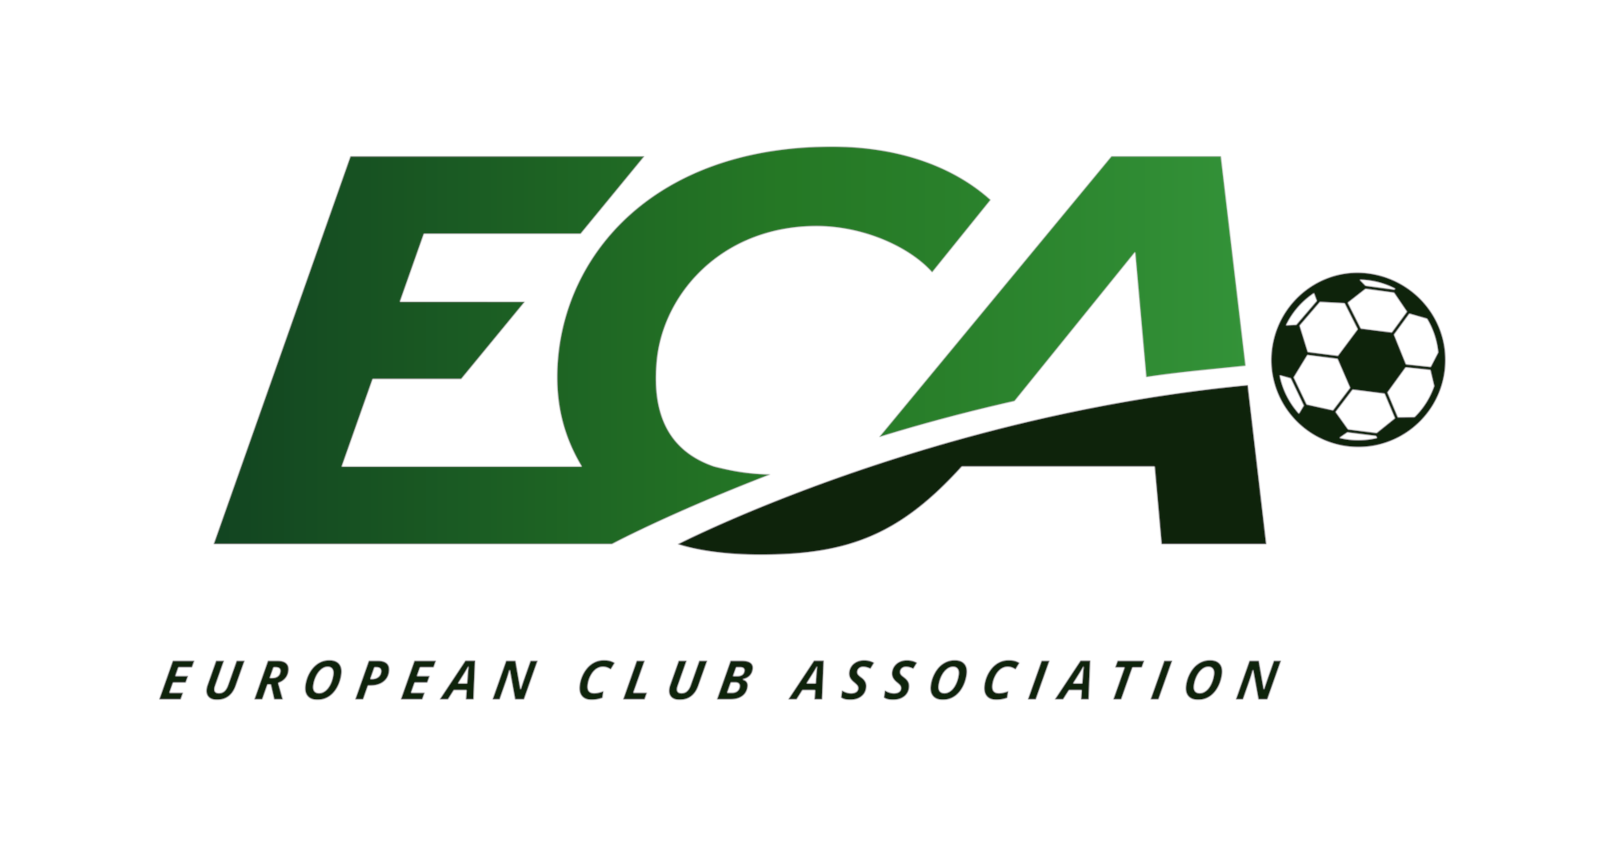 ECA Executive Board statement on the consultation on the future of UEFA Club Competitions